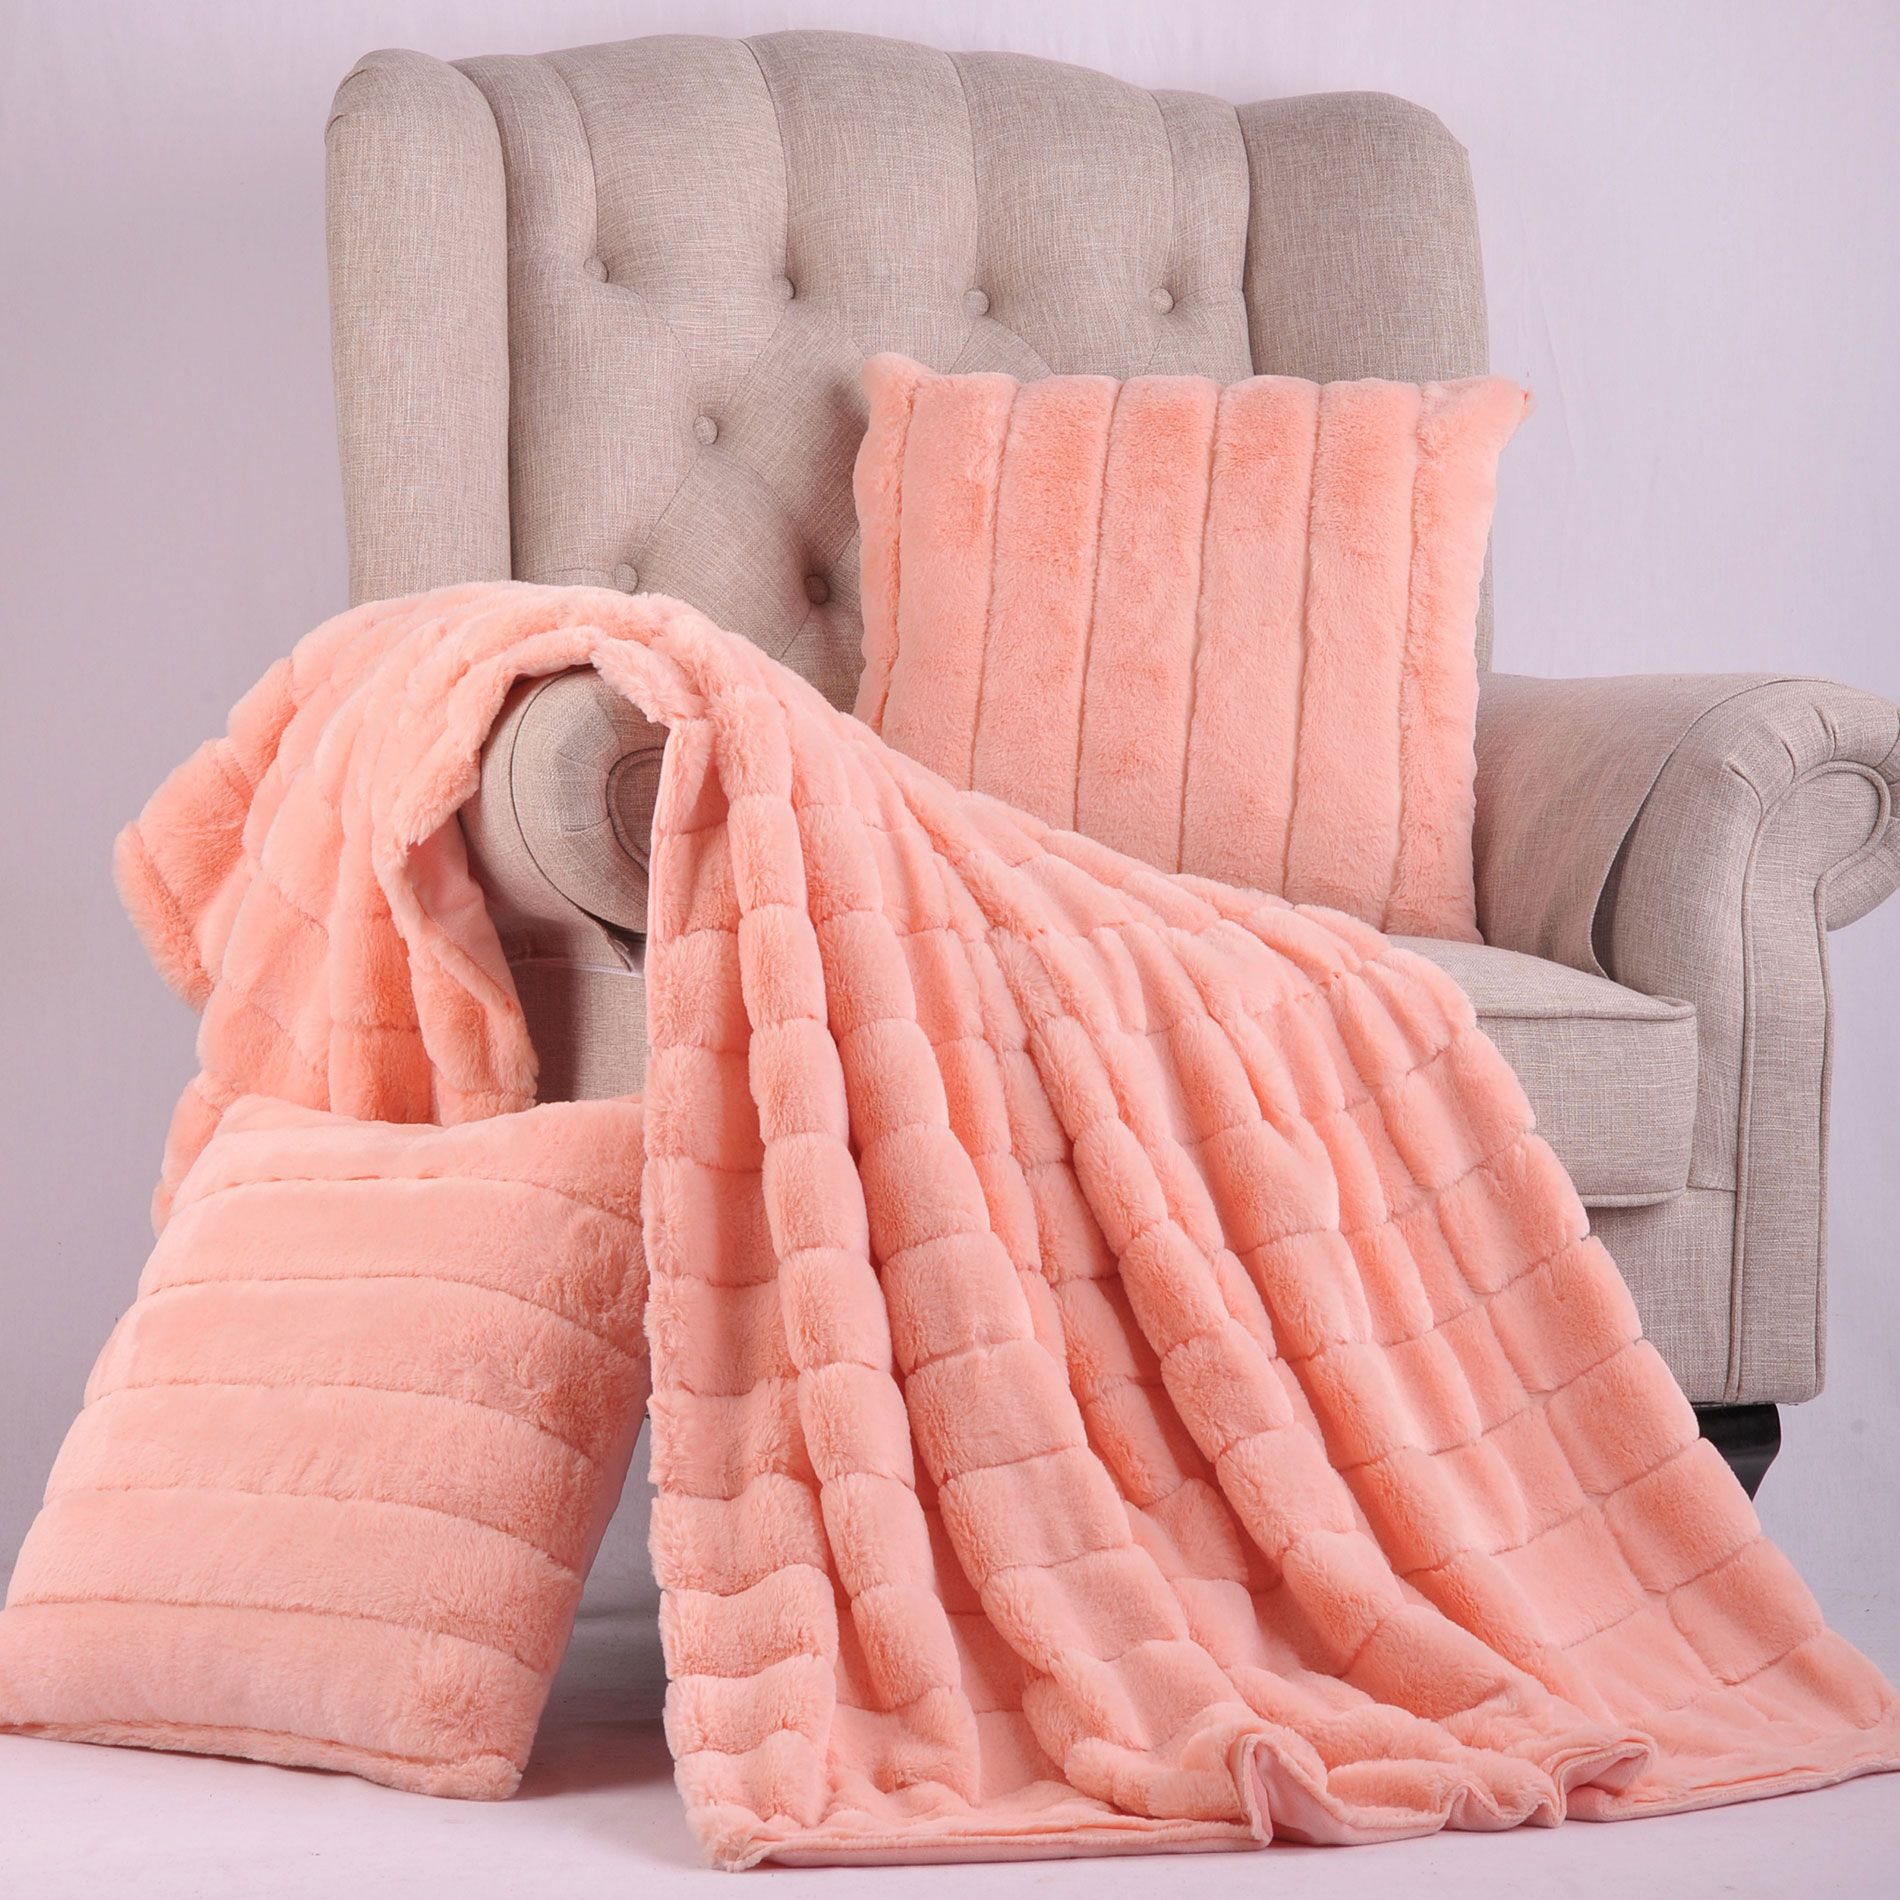 Peach Echo Rabbit Faux Fur Throw Blanket And Pillow Set Combo The Combination Is A Complete Layout For Any Home